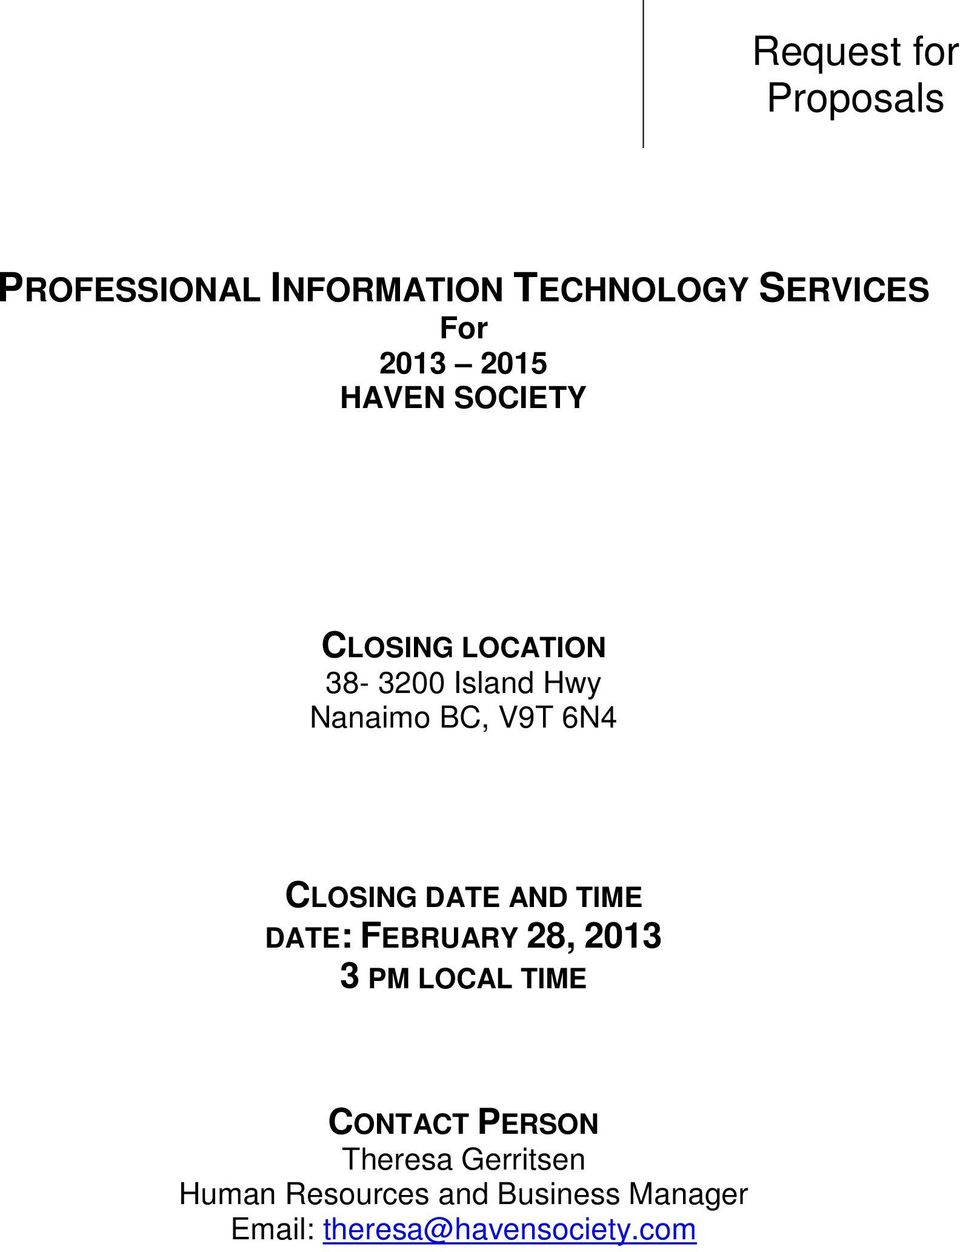 CLOSING DATE AND TIME DATE: FEBRUARY 28, 2013 3 PM LOCAL TIME CONTACT PERSON